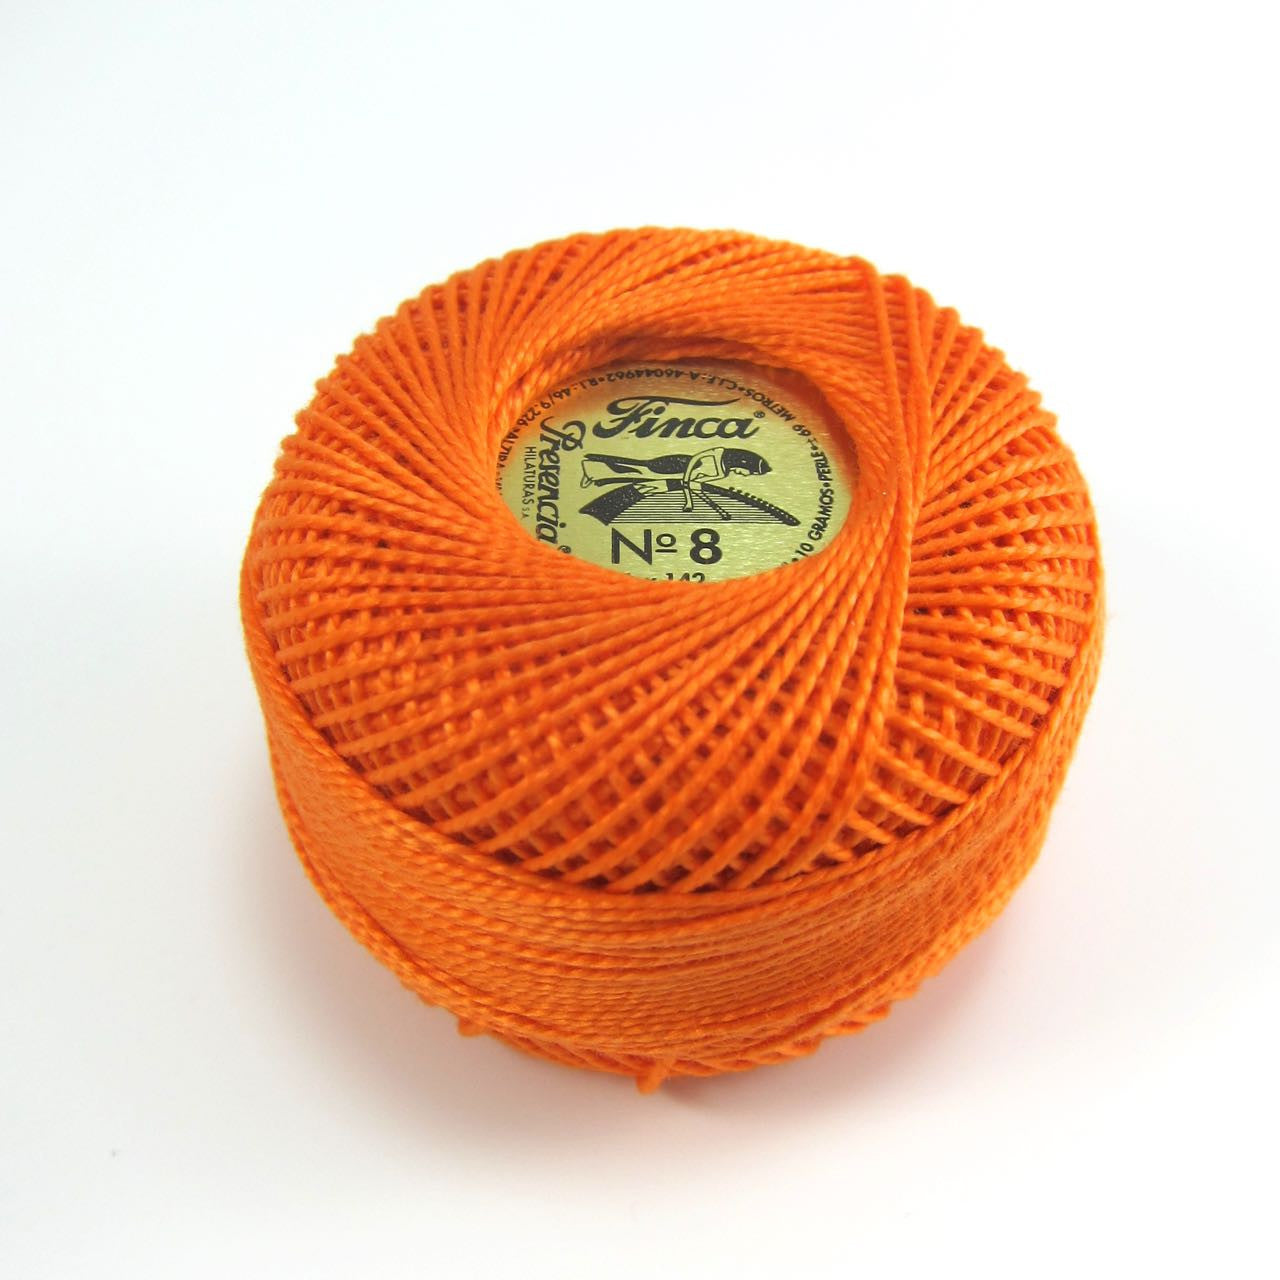 Tangerine Orange Finca Perle Cotton Thread (1237) Perle Cotton - Snuggly Monkey